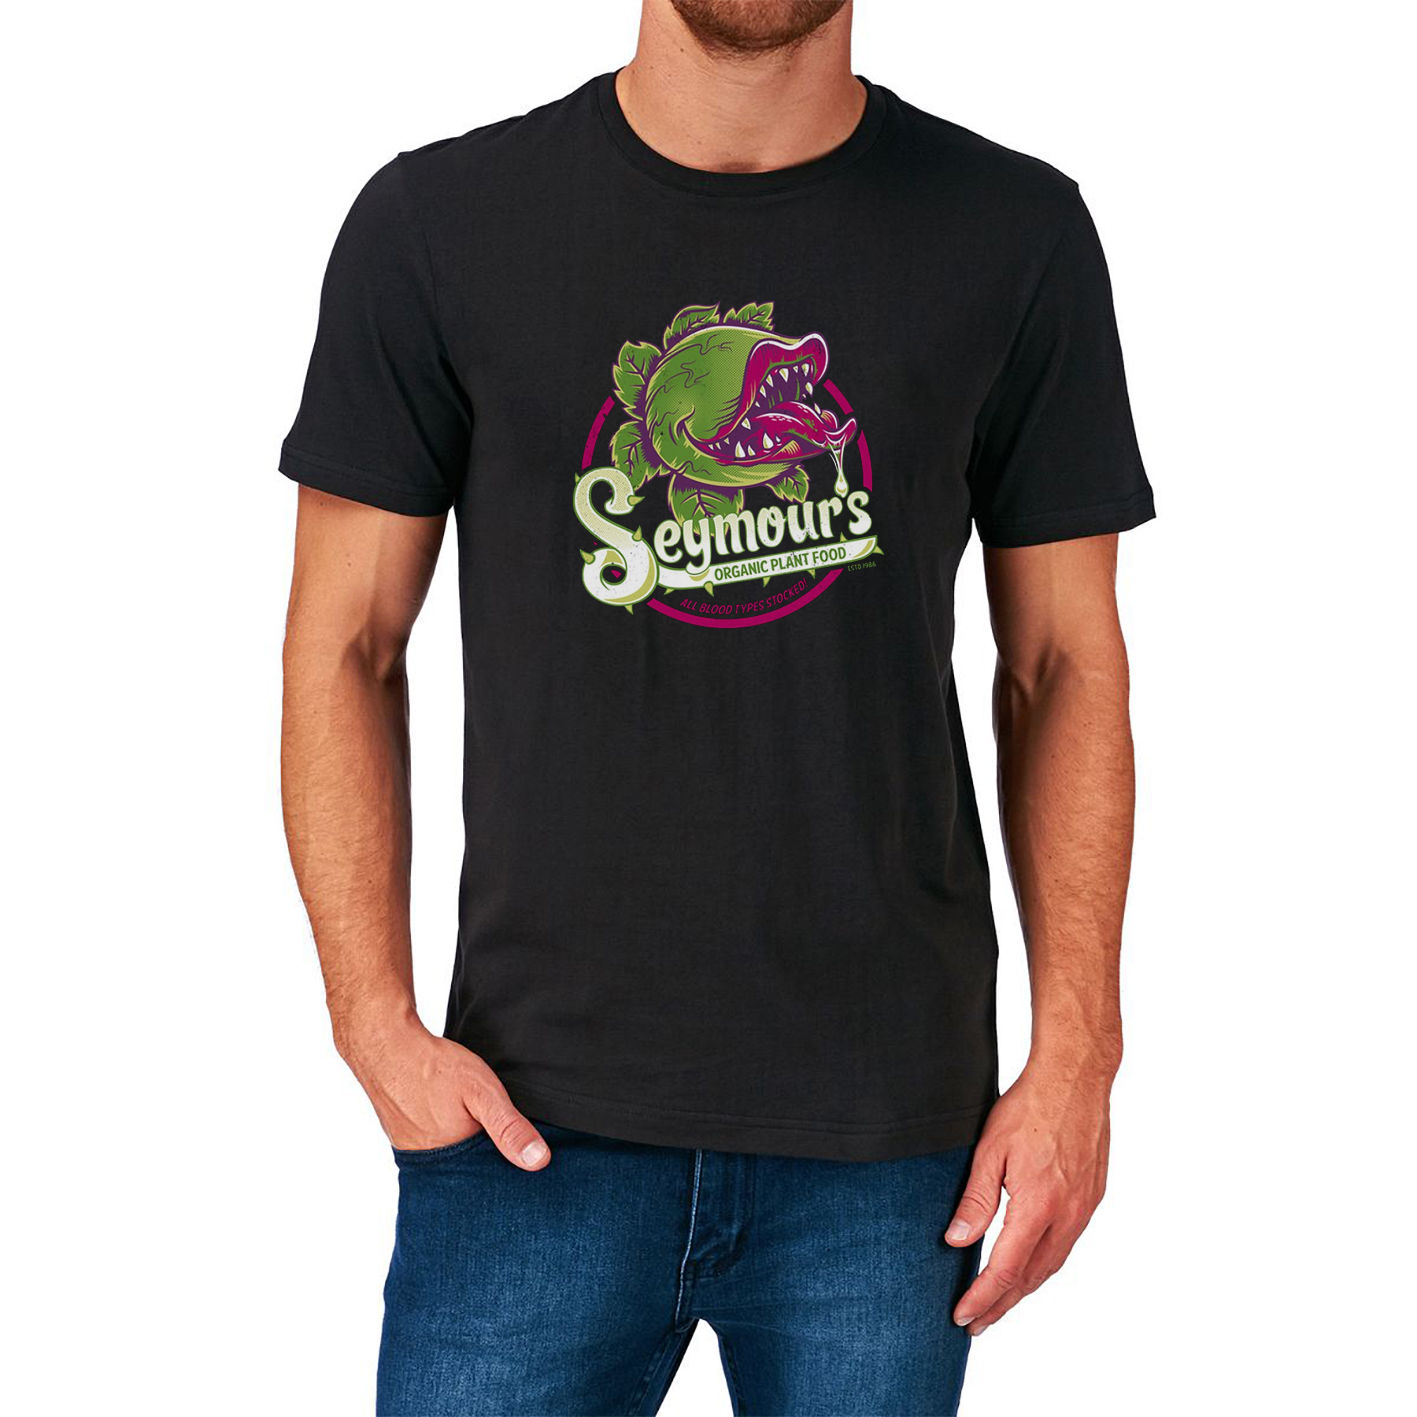 SEYMOURS ORGANIC PLANT FOOD T SHIRT LITTLE SHOP OF HORRORS 1980S CULT MOVIE New T Shirts Funny Tops Tee New Unisex Funny Tops